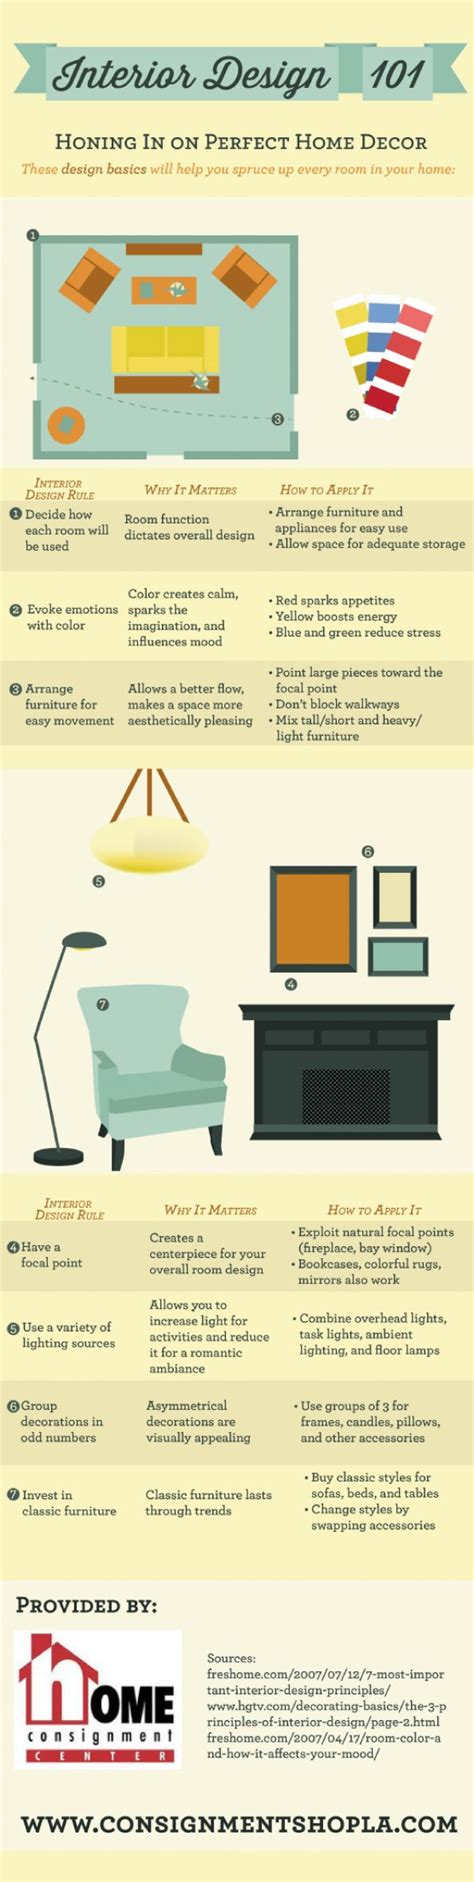 Interior Design 101 by Interior Design 101 Interior Design Infographics